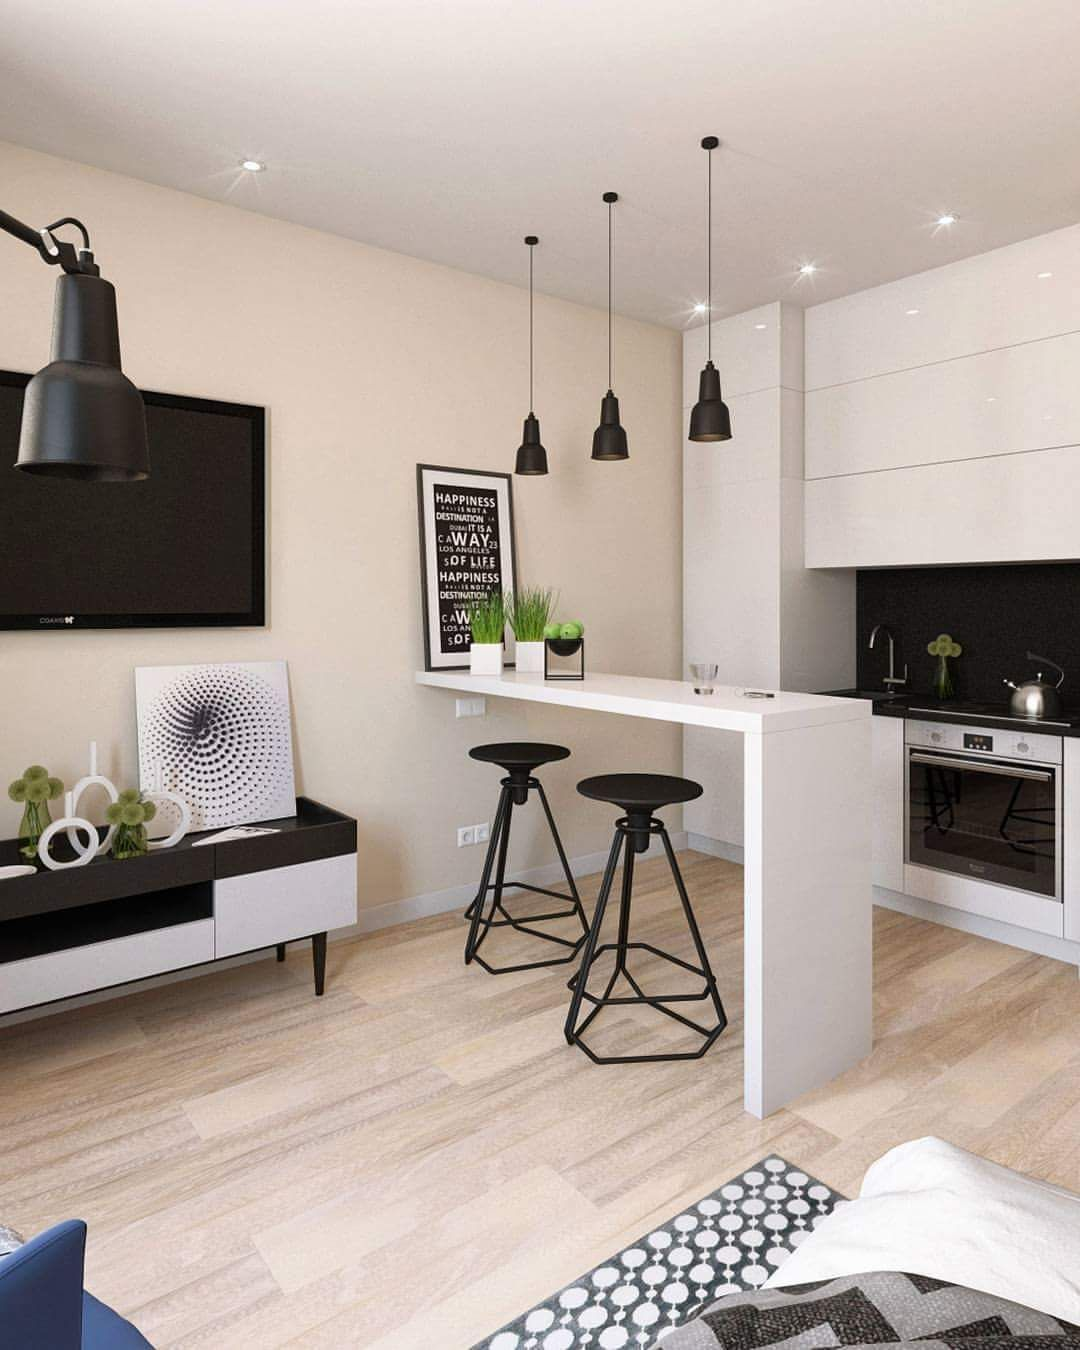 Arete Kirkland Apartments 38 Classy And Timeless Studio Apartment Designs That Reek Utmost